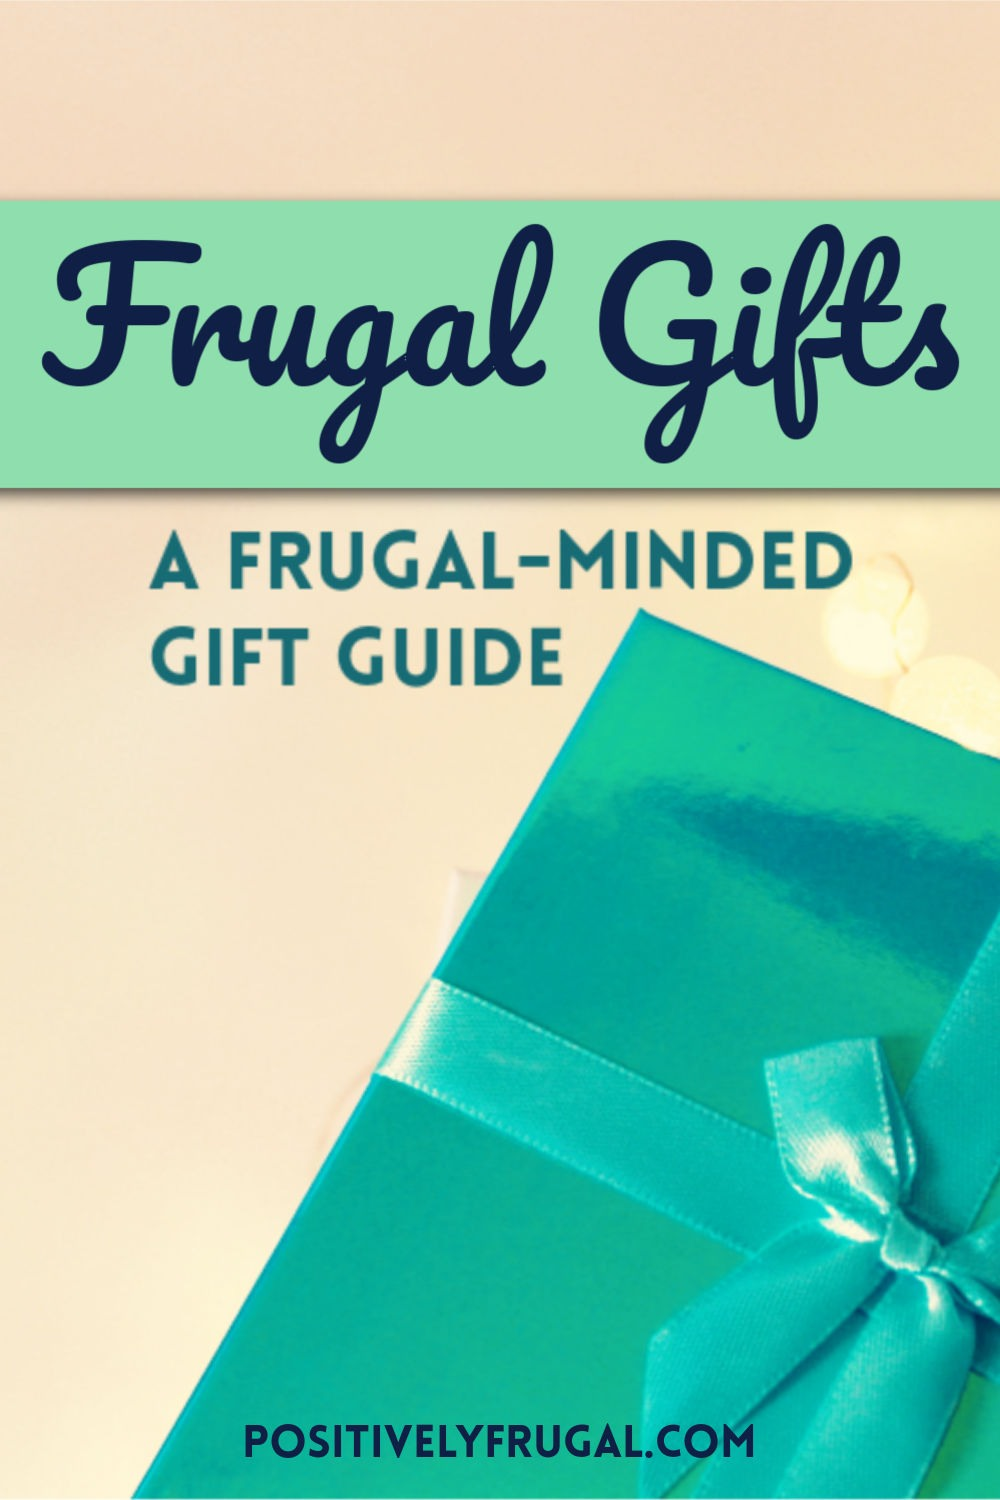 Frugal Gifts by PositivelyFrugal.com